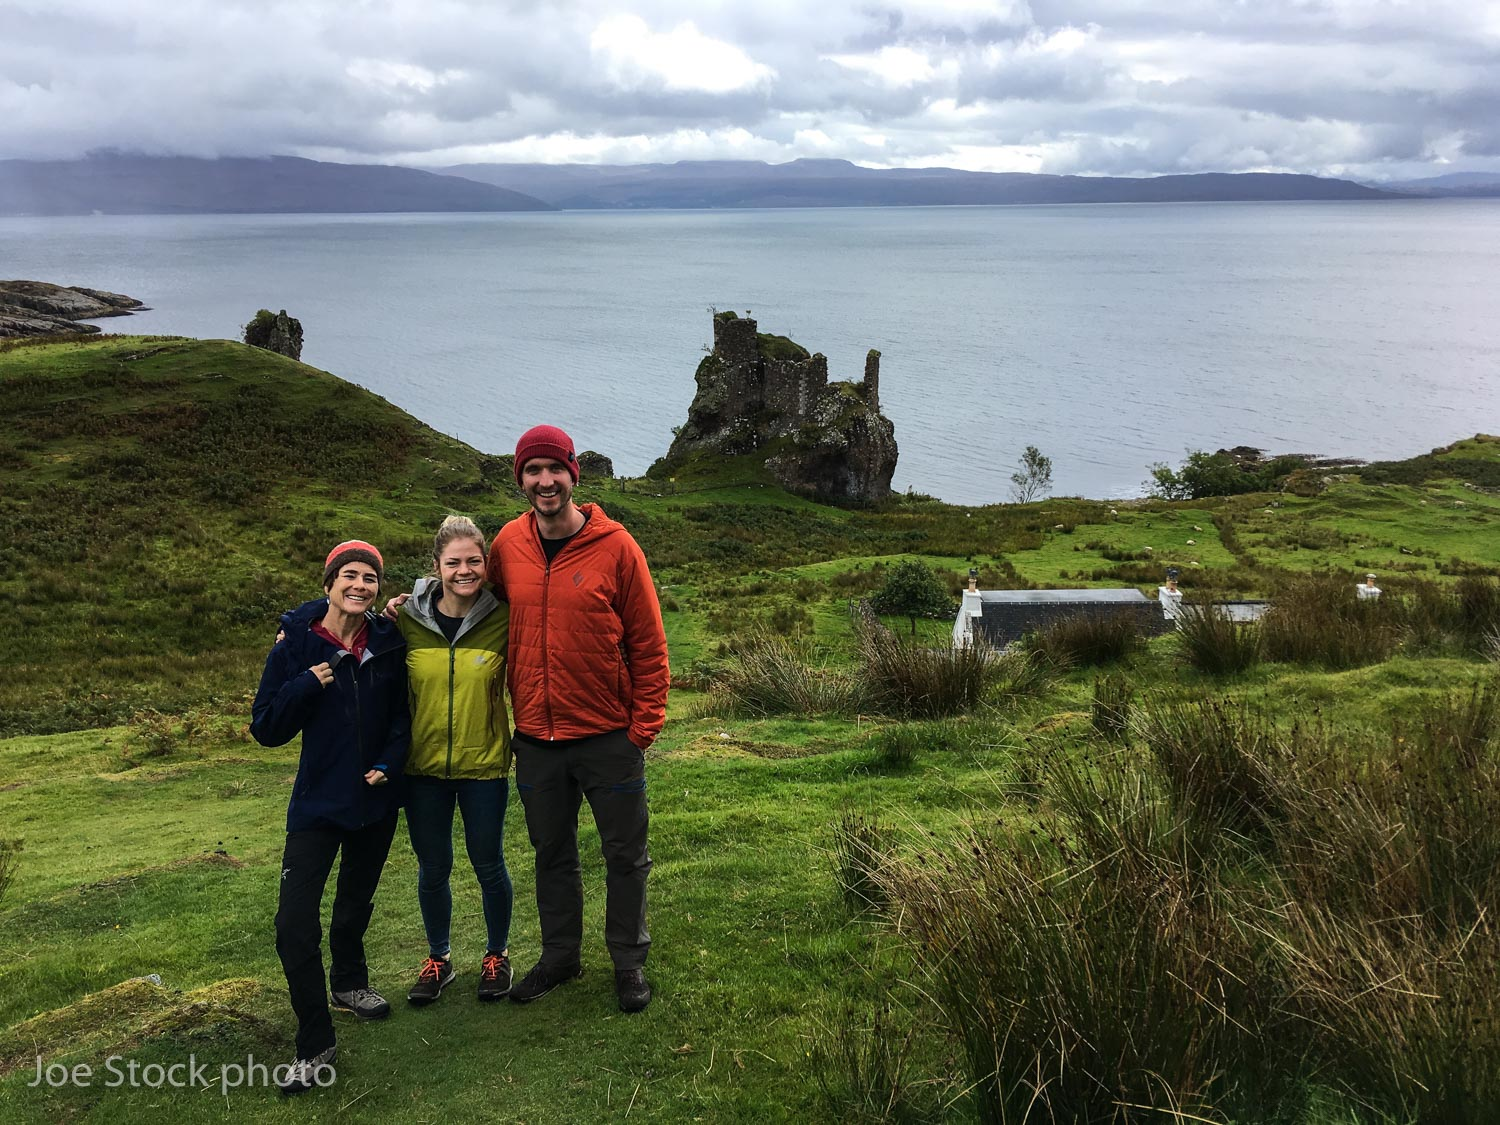 Scotland with Al and Becca! We've been on two Alaska Range ski trips and a Mont Blanc trip together. Amazing fun beautiful people. Becca's parents have a place on Rassay, an island off the Isle of Skye. What a place! Thanks Al and Becca!